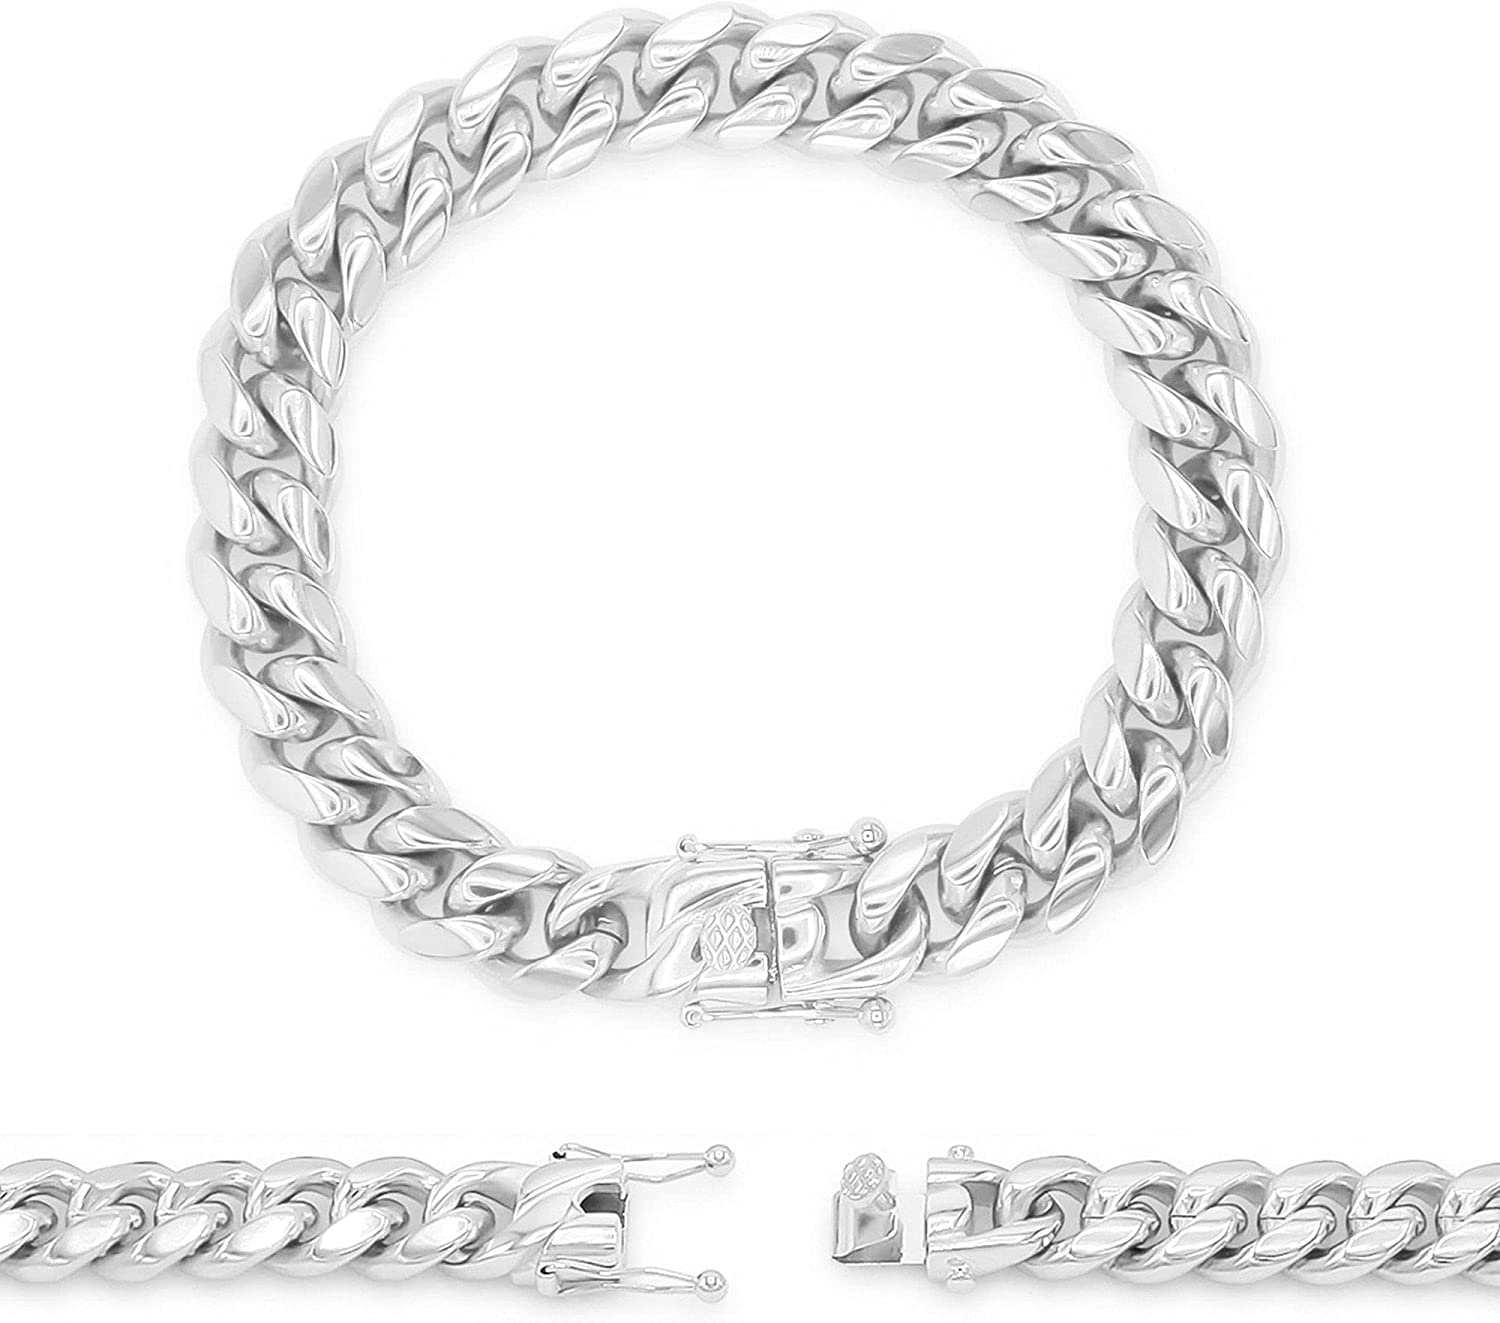 BEBERLINI Cuban Limited time trial price Link Chain Silver Spasm price 30